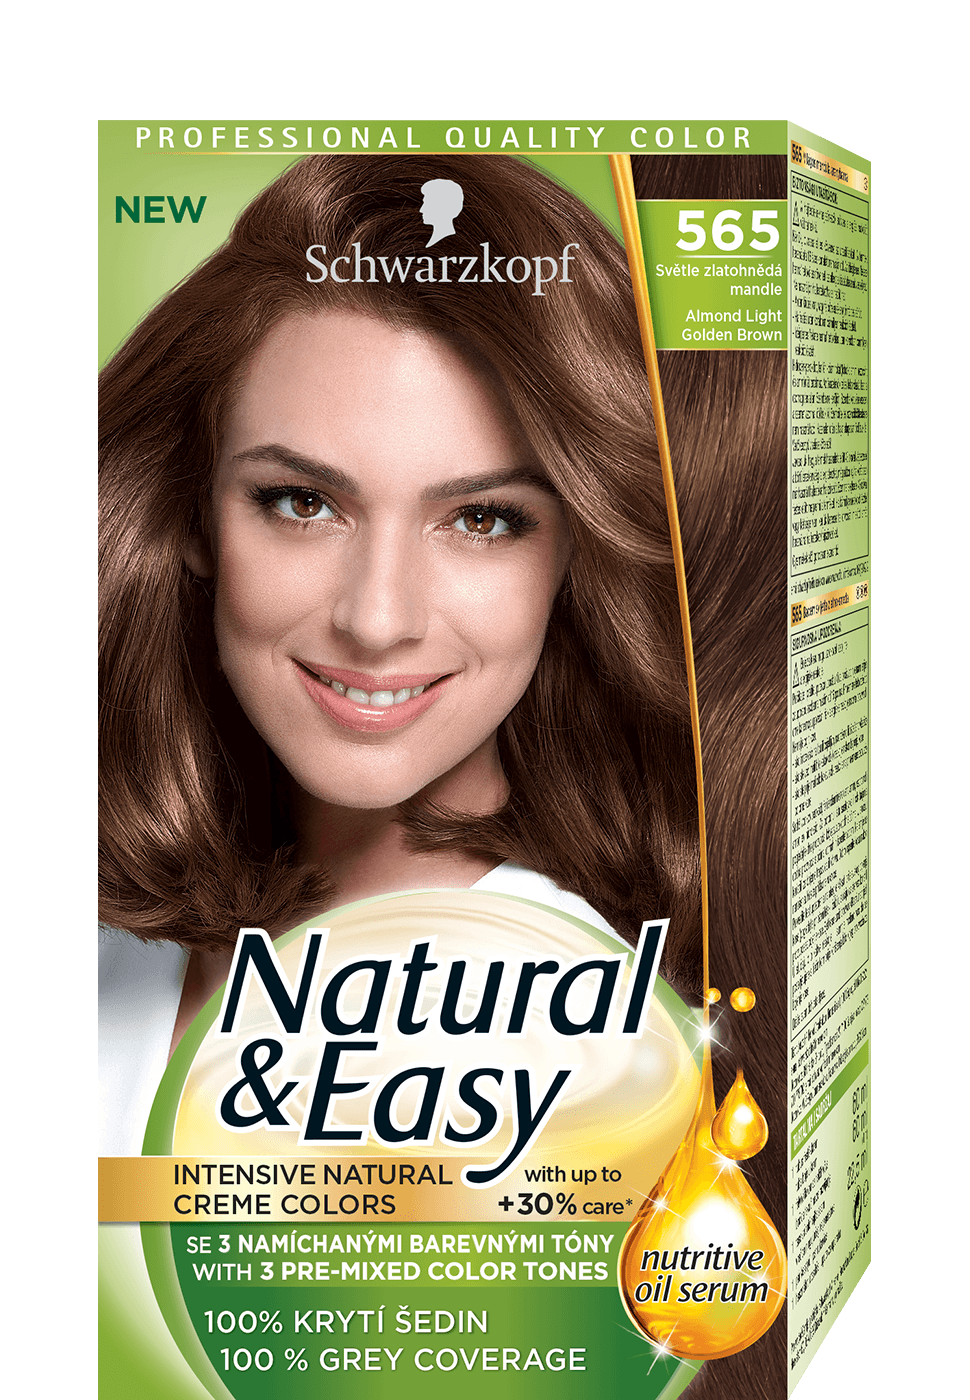 natural_easy_com_brown_hair_565_dark_berry_golden_brown_970x1400